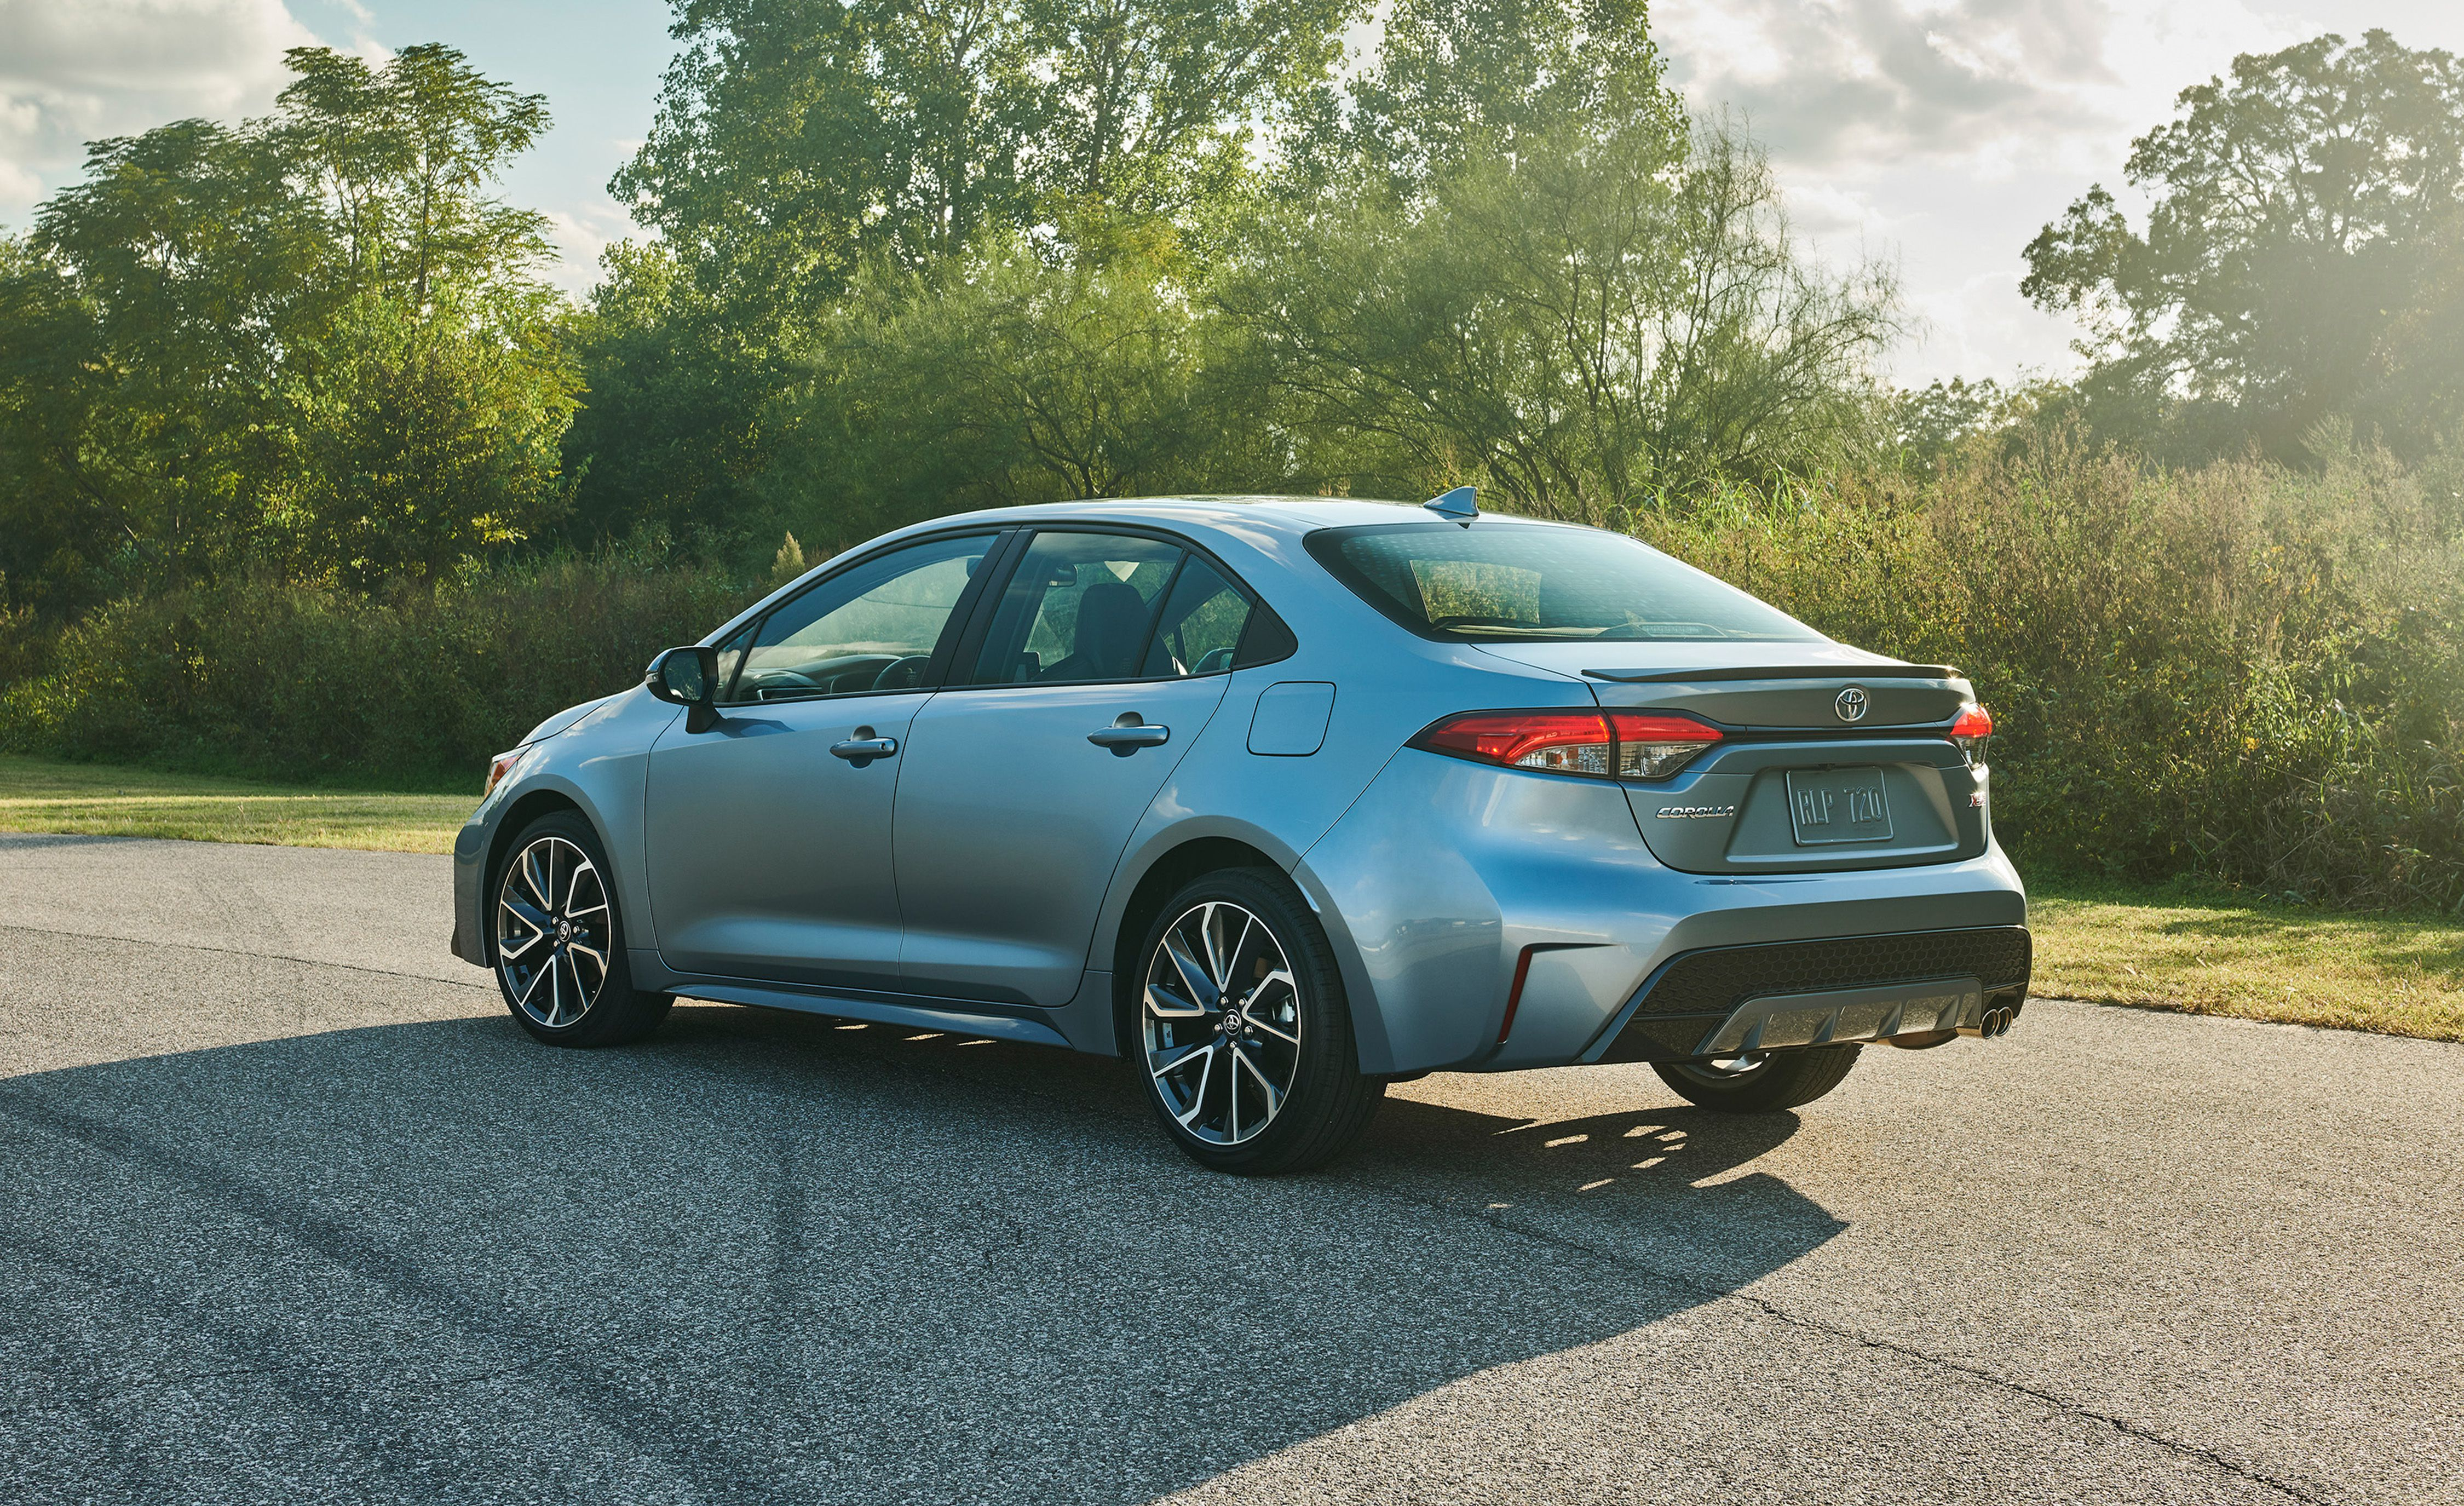 Image of a pale blue 2020 Toyota Corolla parked on a forested road.